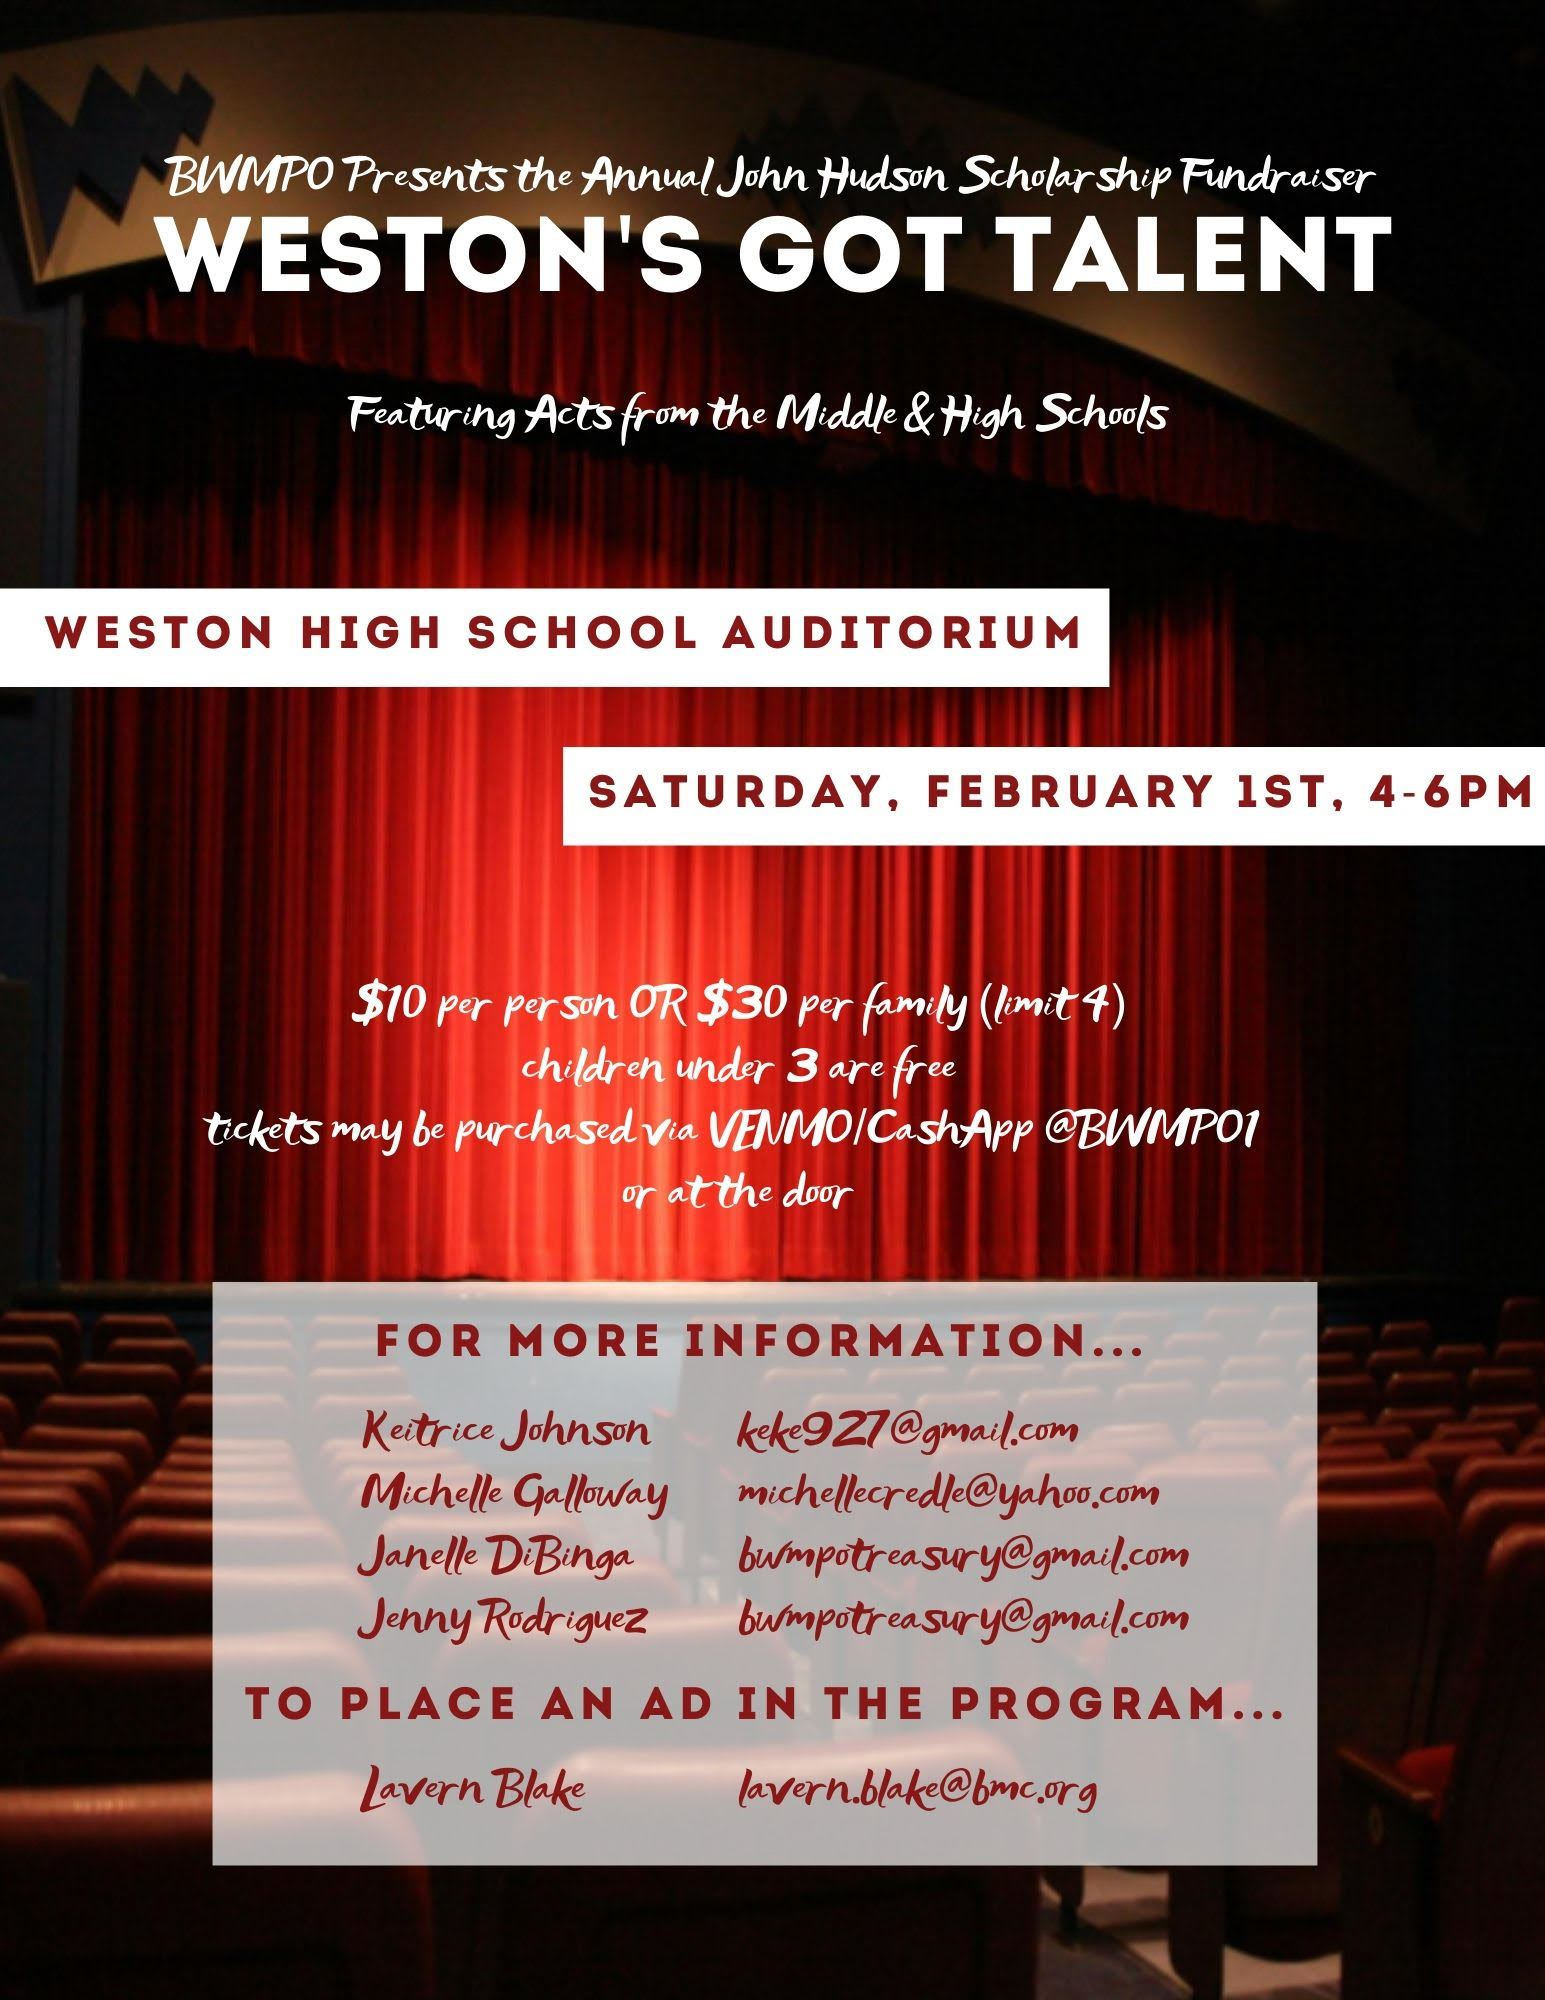 Westons Got Talent